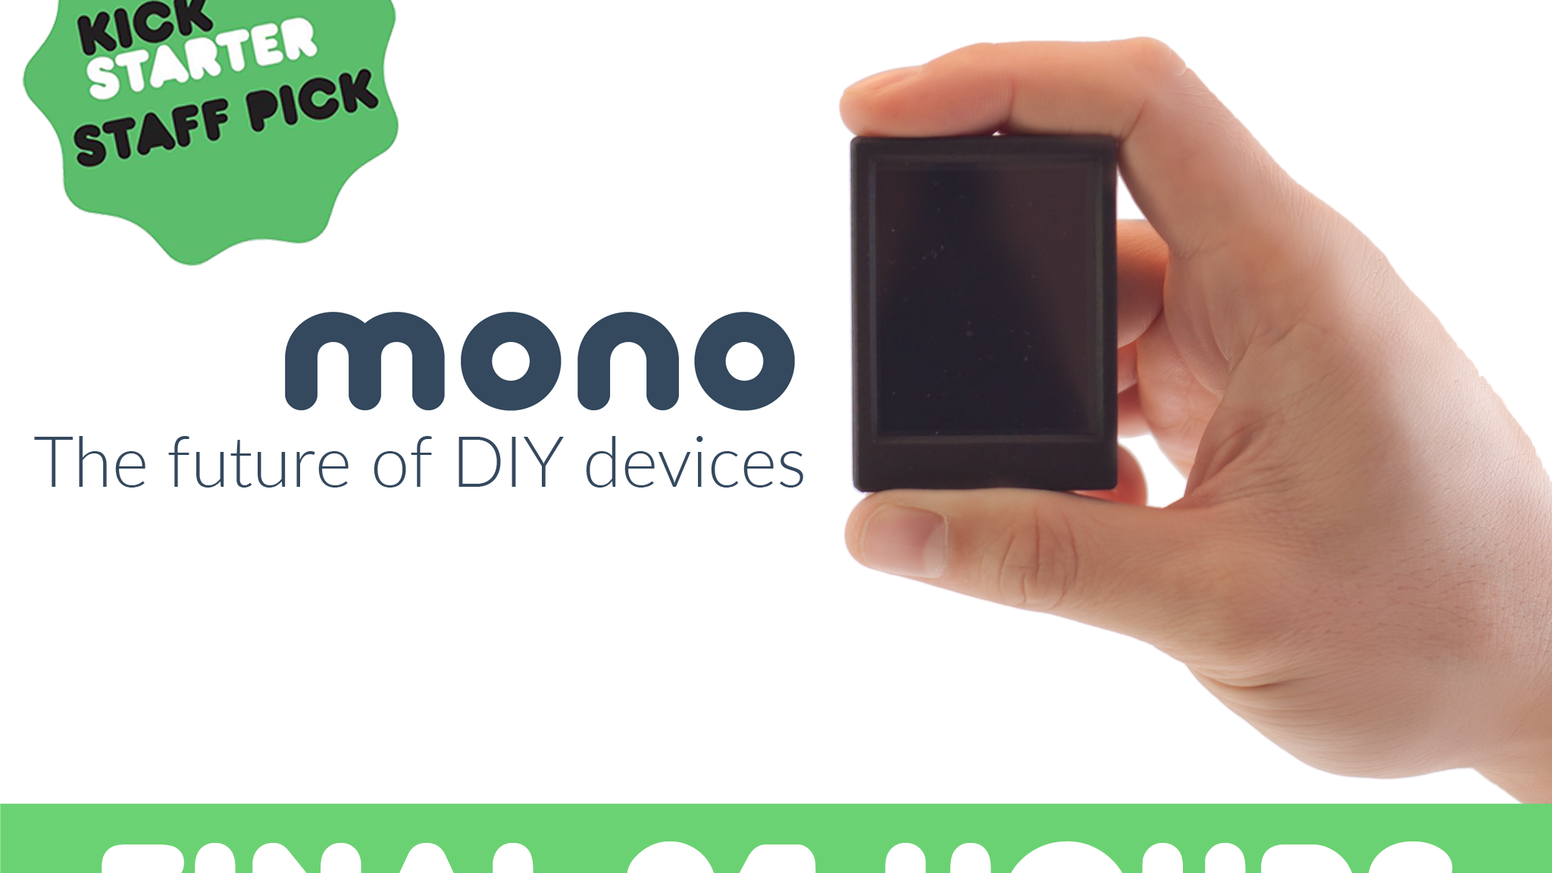 Avoid stranded projects. Mono is an Arduino-compatible programmable gadget with touch display, wireless and battery.